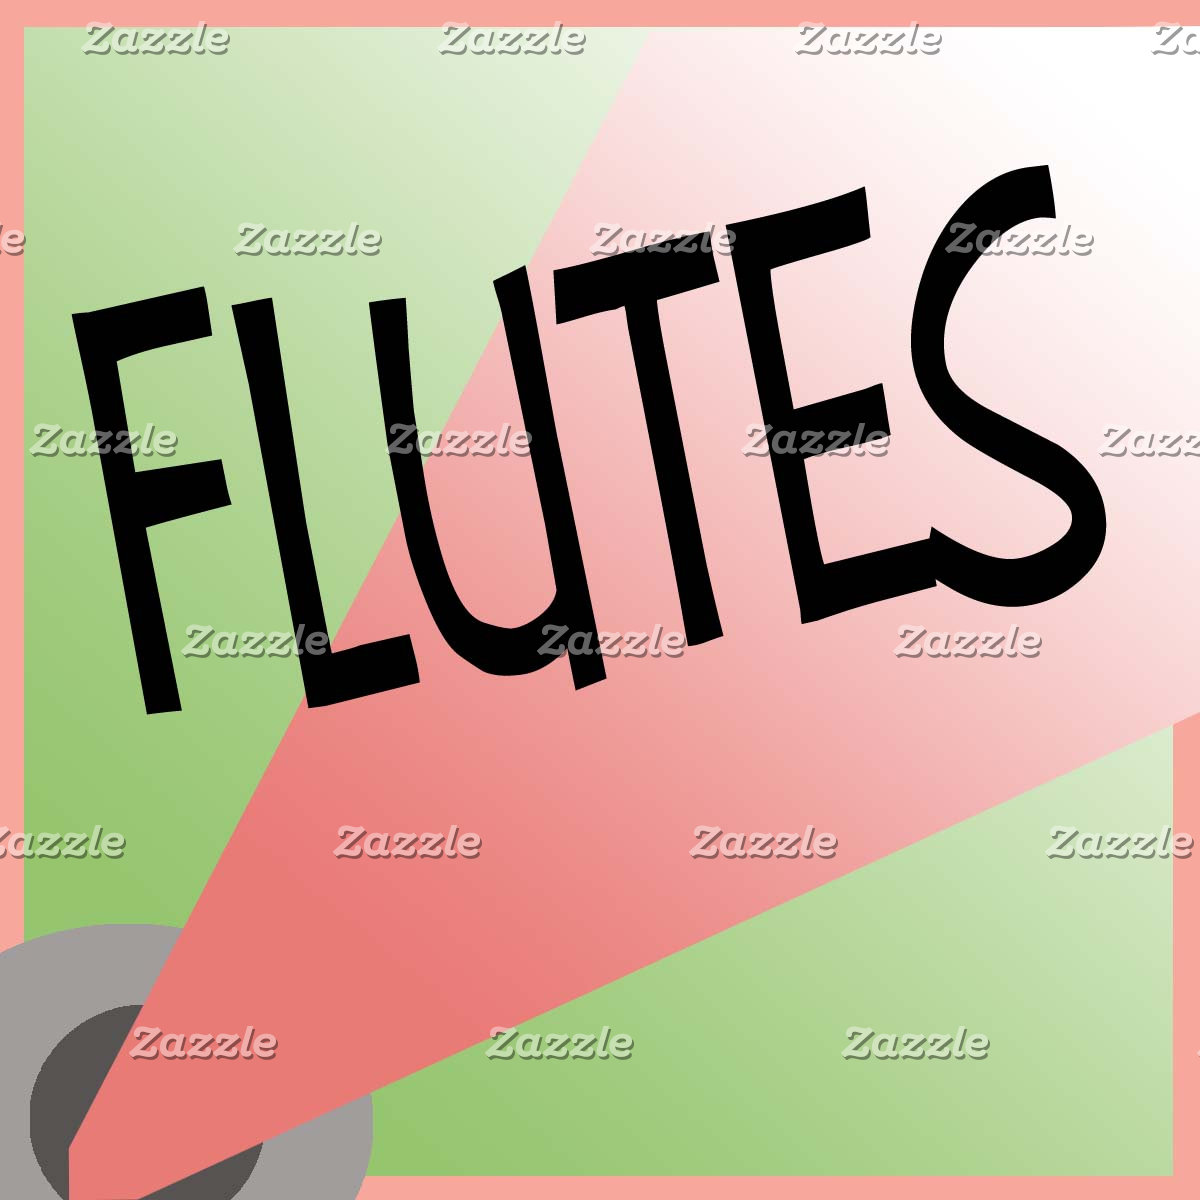 All Flute